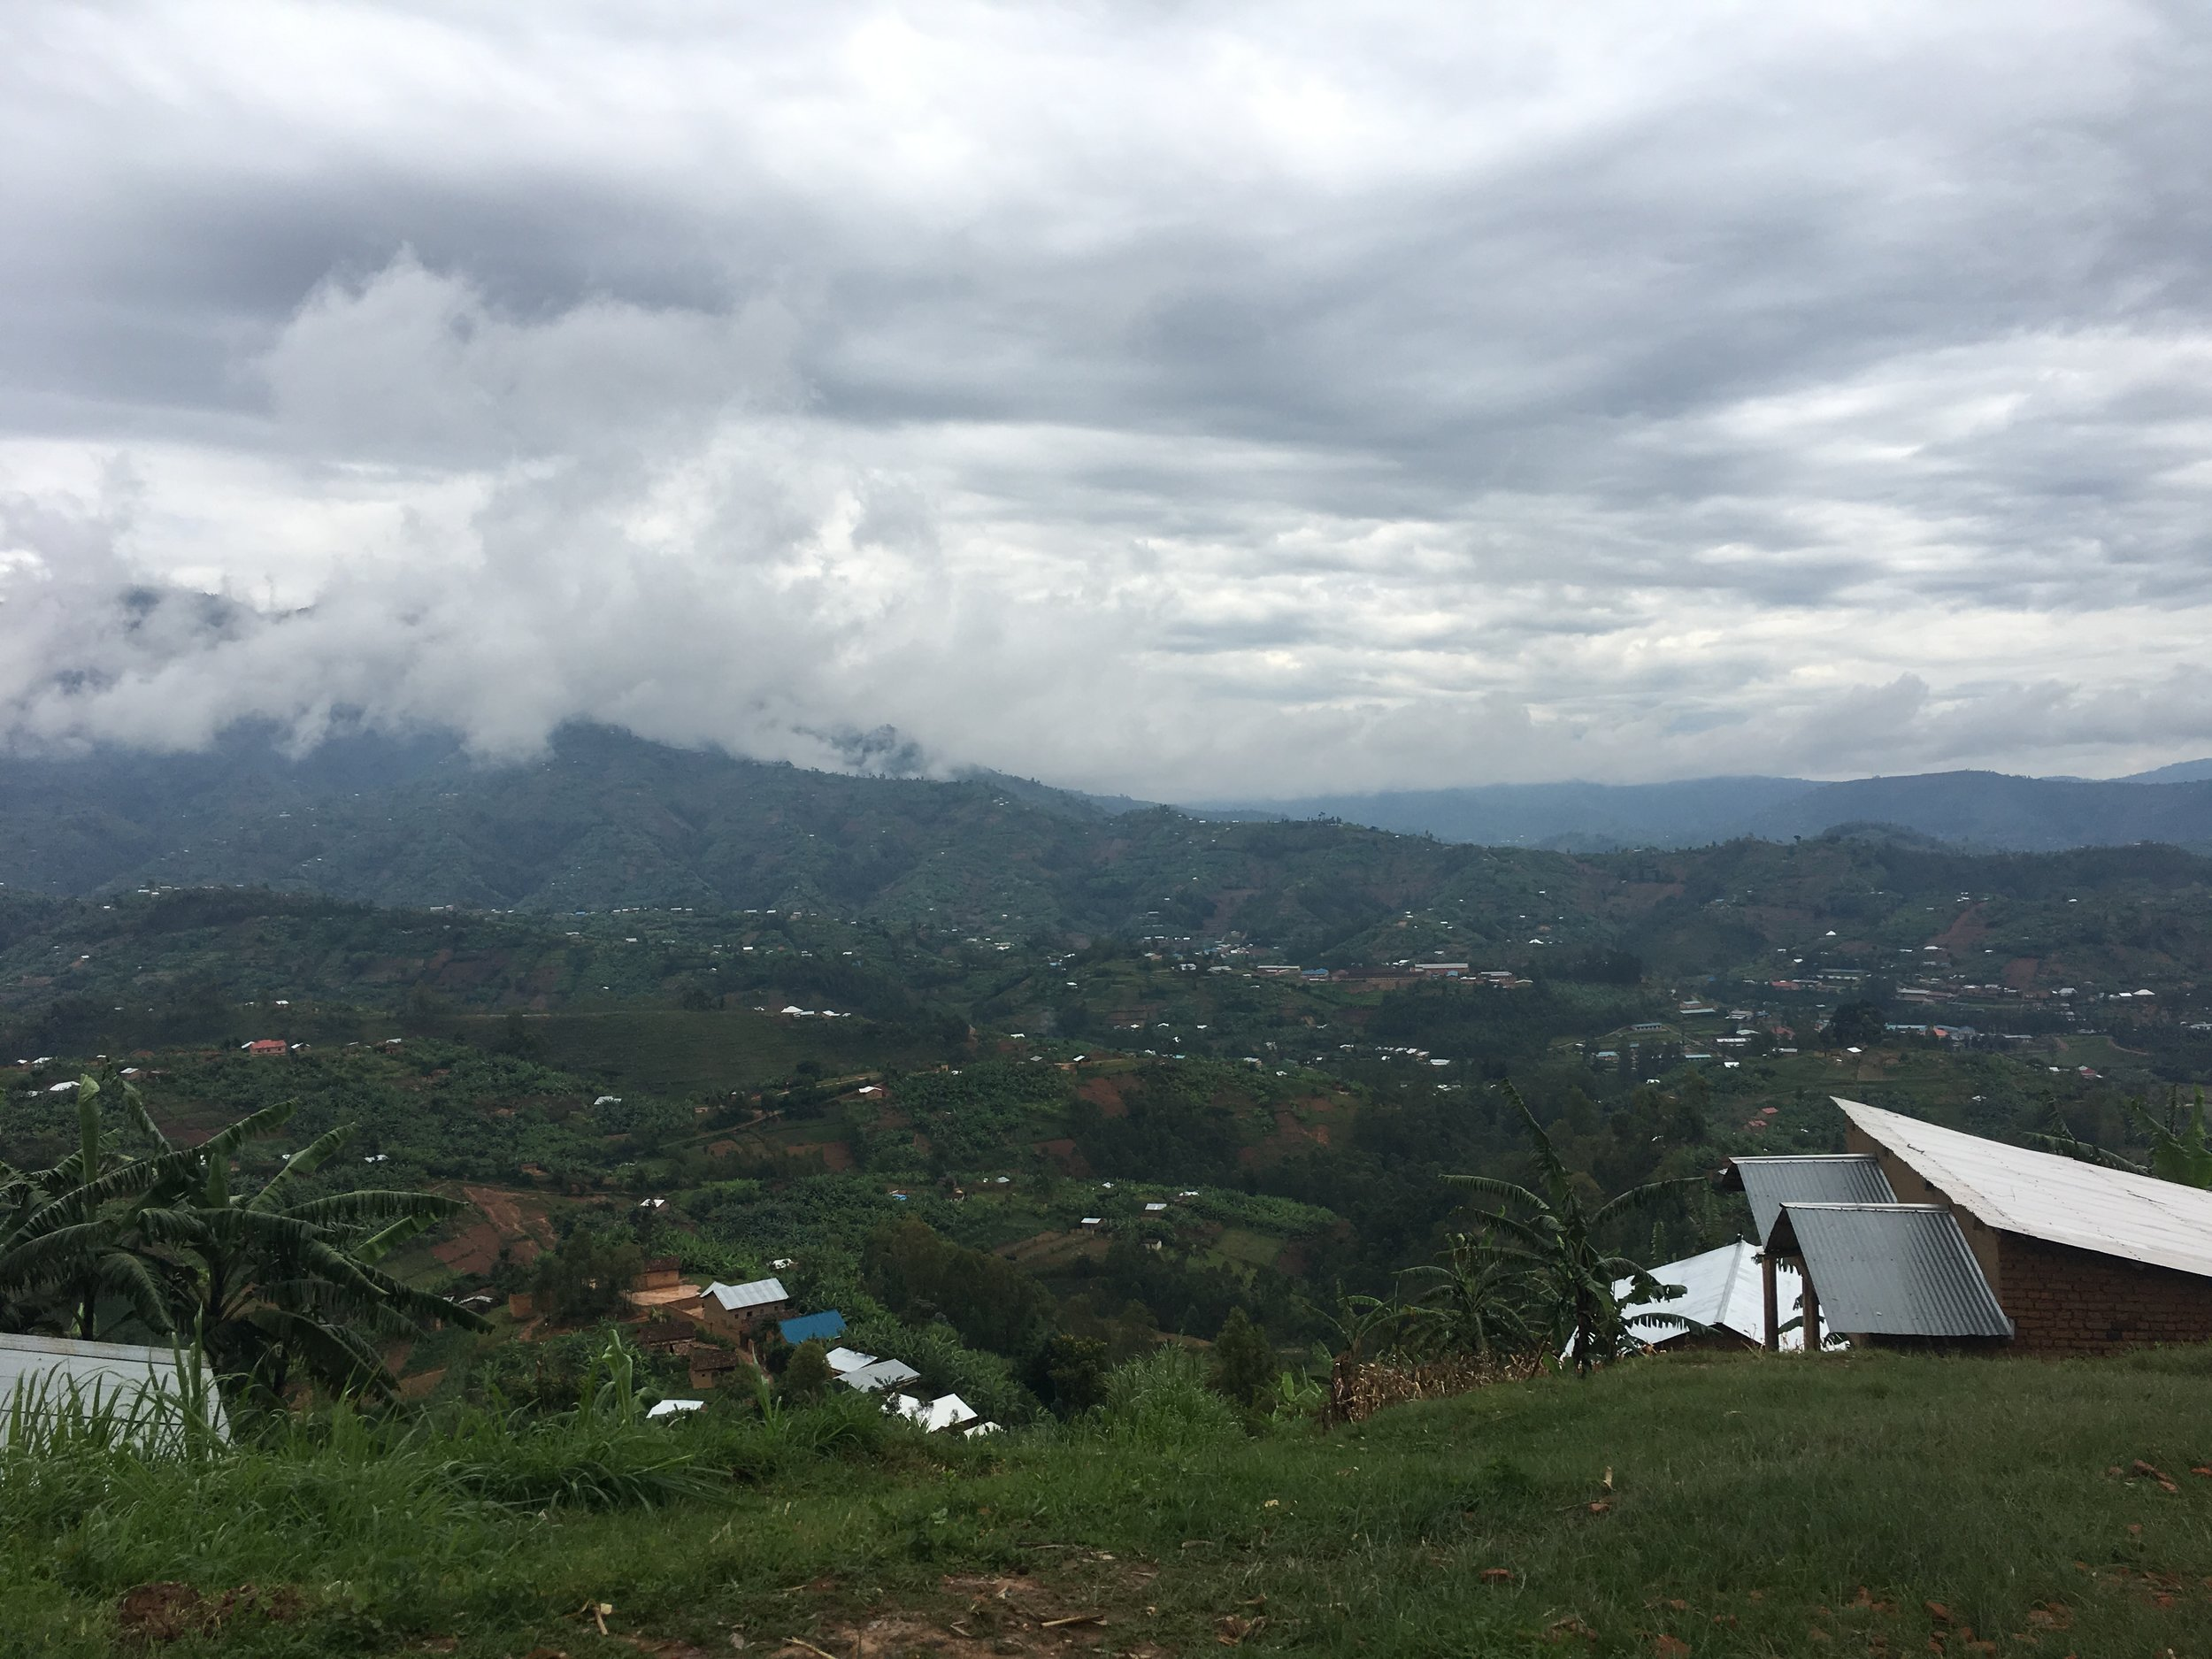 Given the landscape and the remoteness of places, distributed energy solutions prove more feasible than the grid in many places across Rwanda.